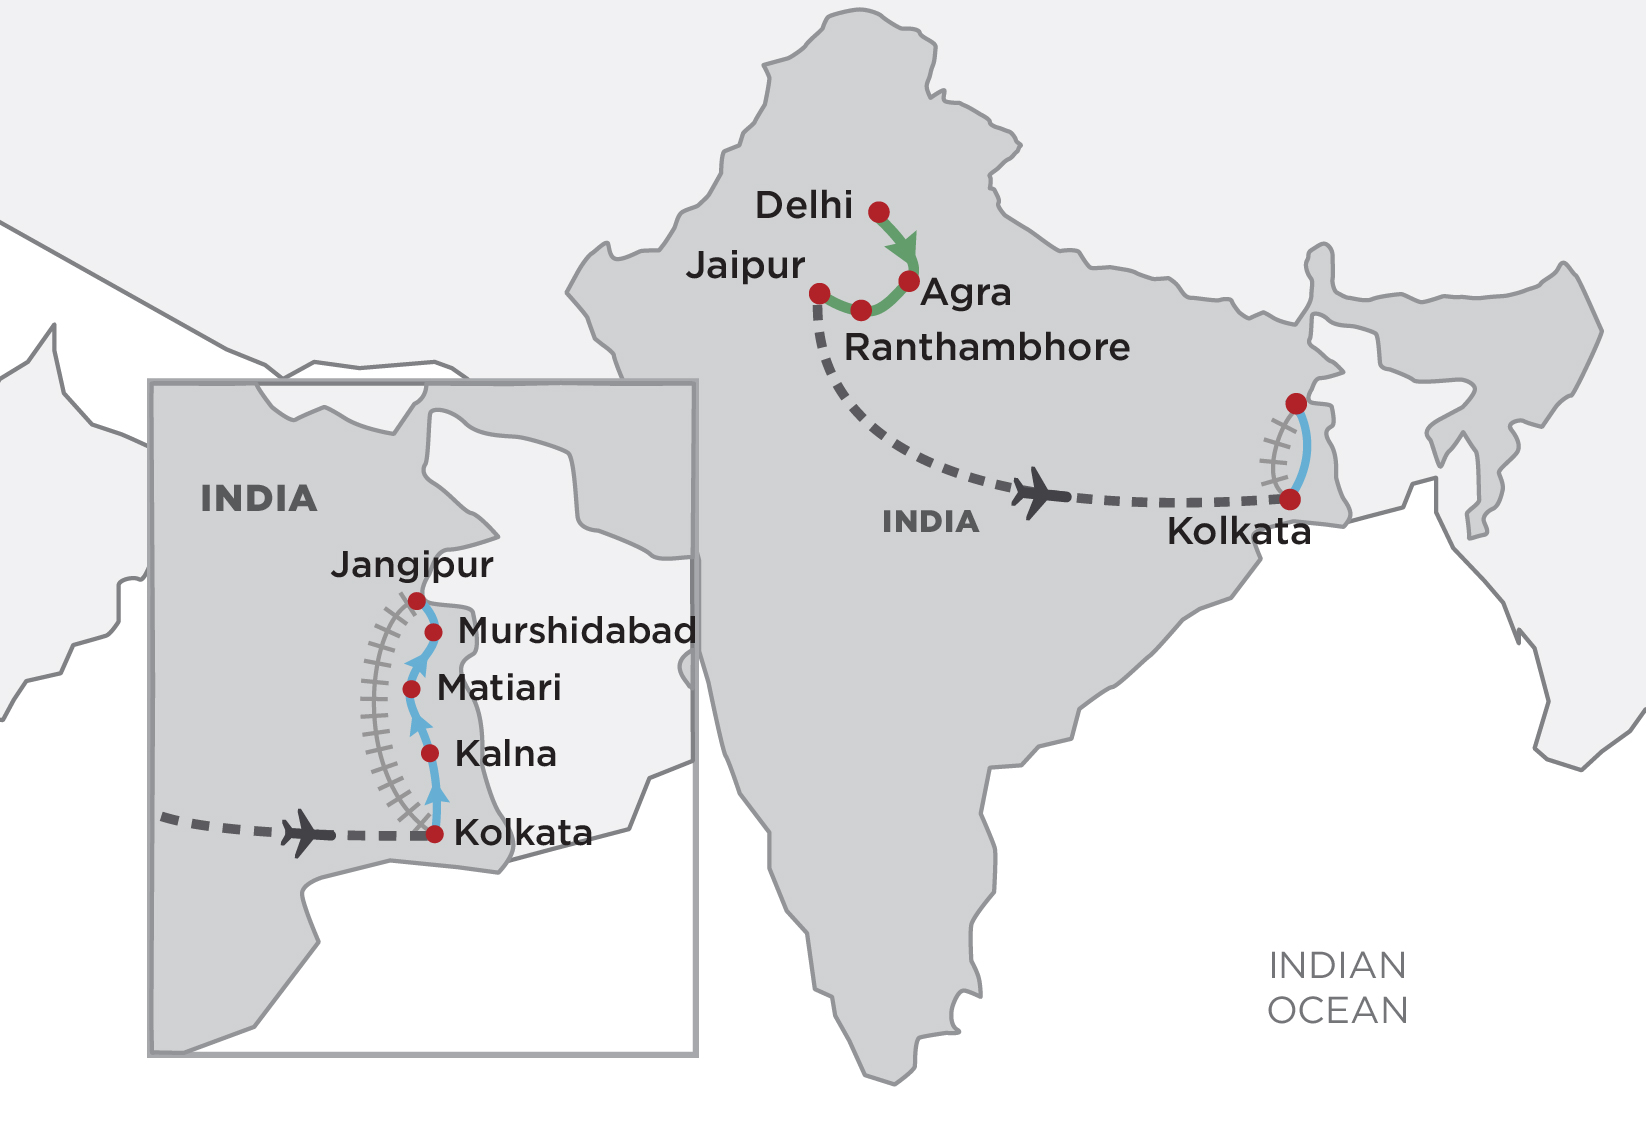 Temples, Tigers & the Ganges map